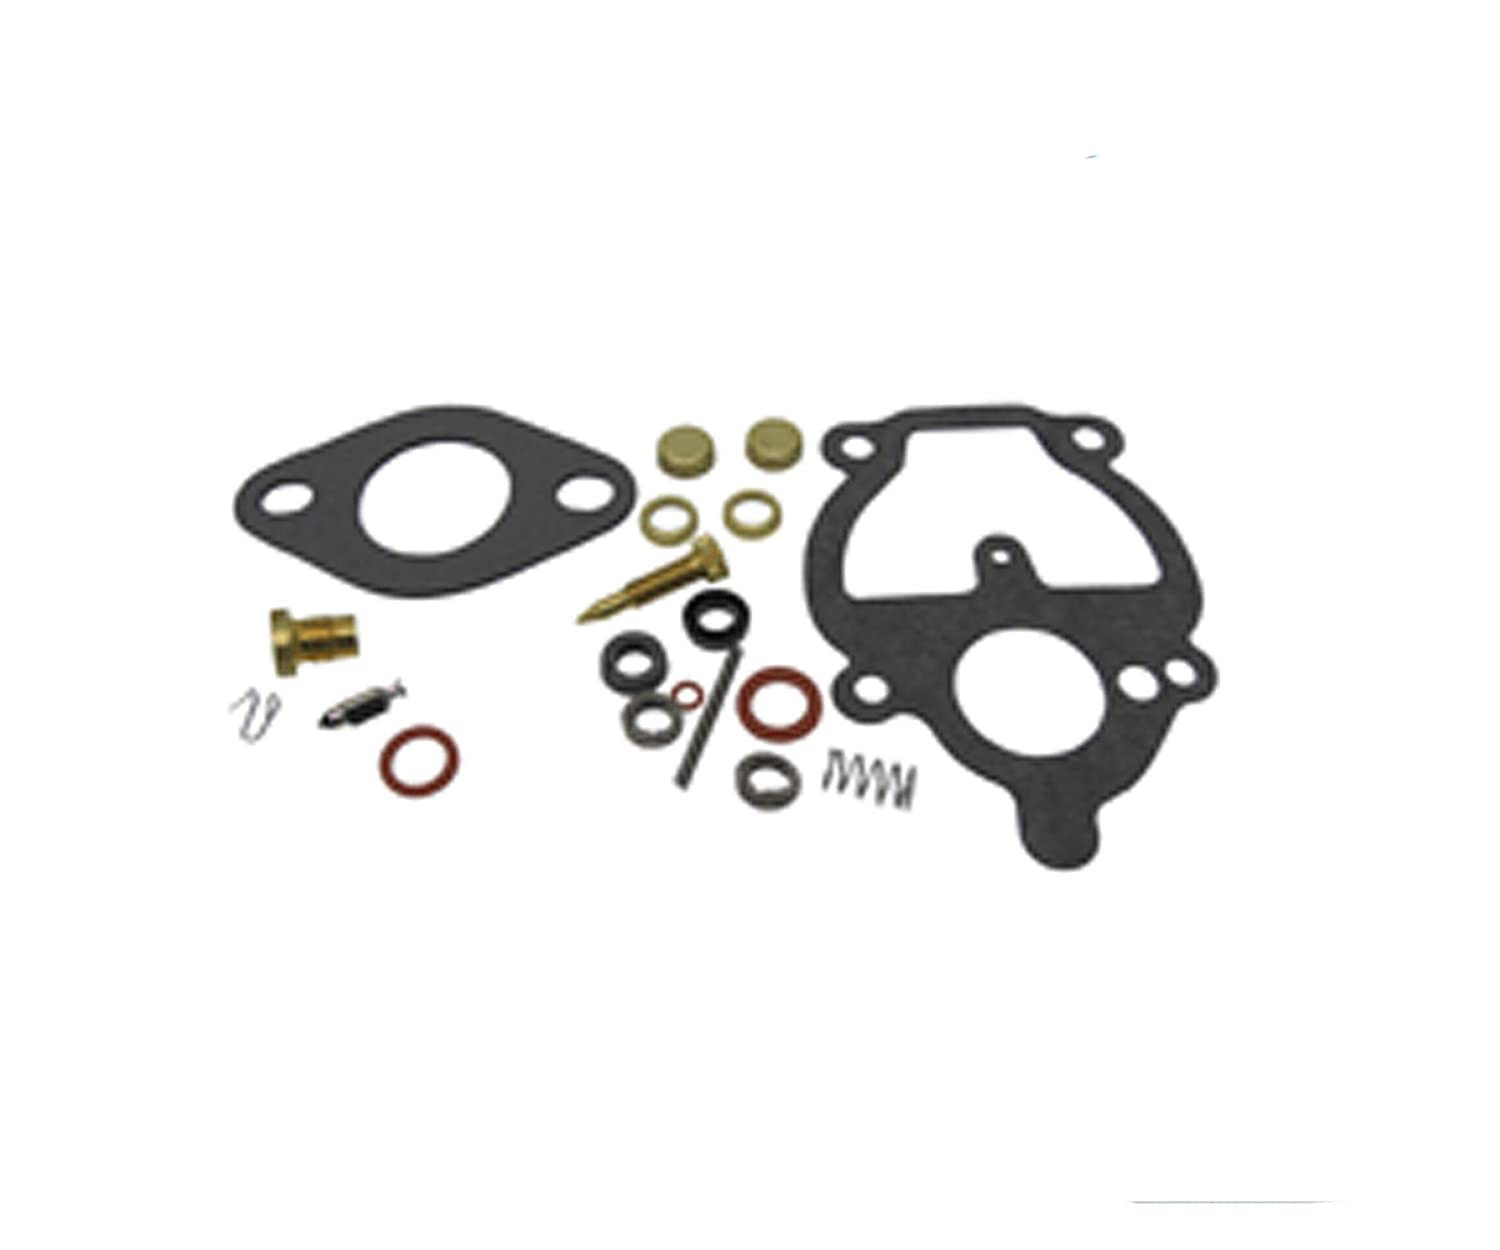 R0111 - IH Farmall Basic Tractor Carburetor Kit for Zenith Carbs Listed